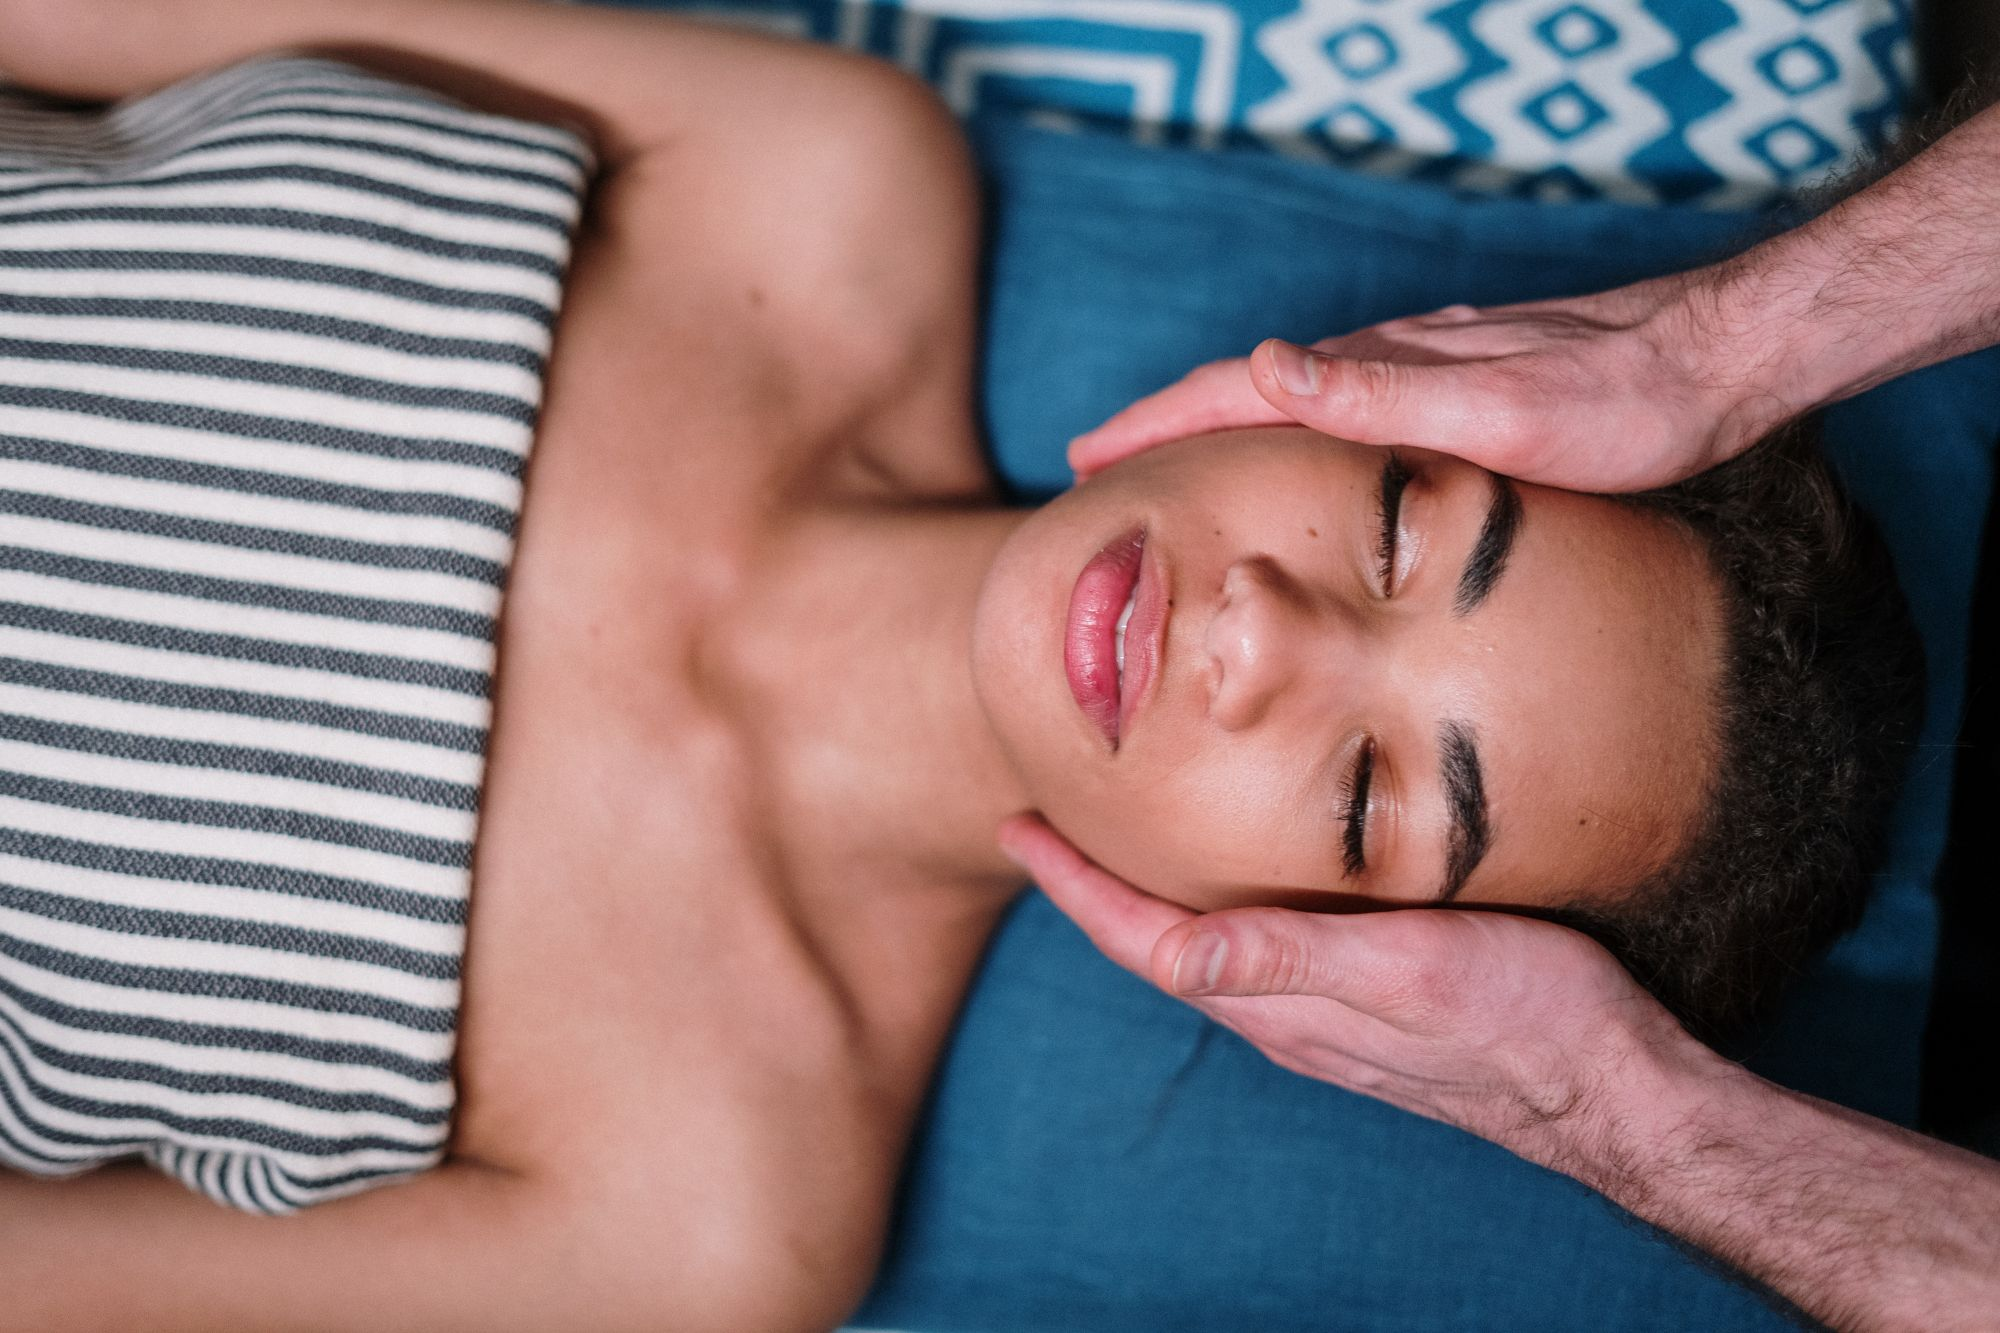 Global Wellness Day 2021: 5 Ways To Do Your Own Thai Facial Massage at Home